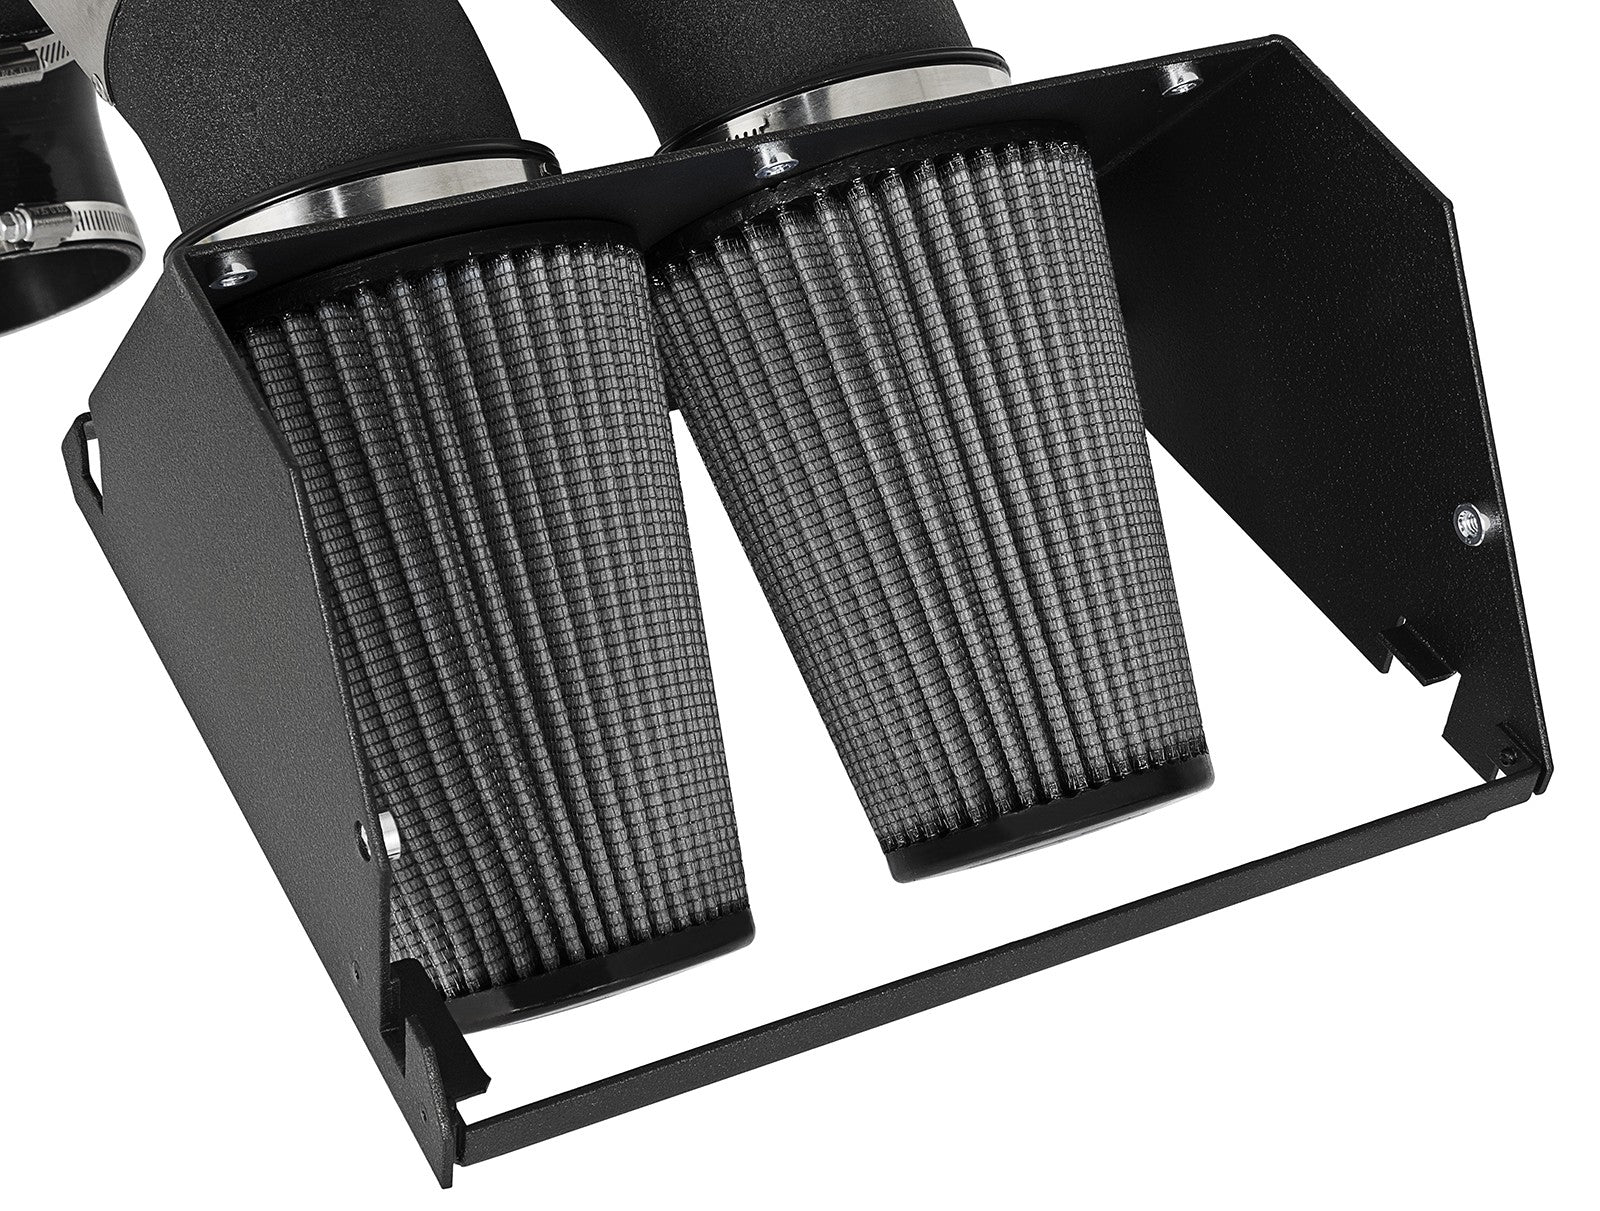 aFe POWER 51-12882-B Magnum FORCE Stage-2 Pro Dry S Cold Air Intake System - Wrinkle Black